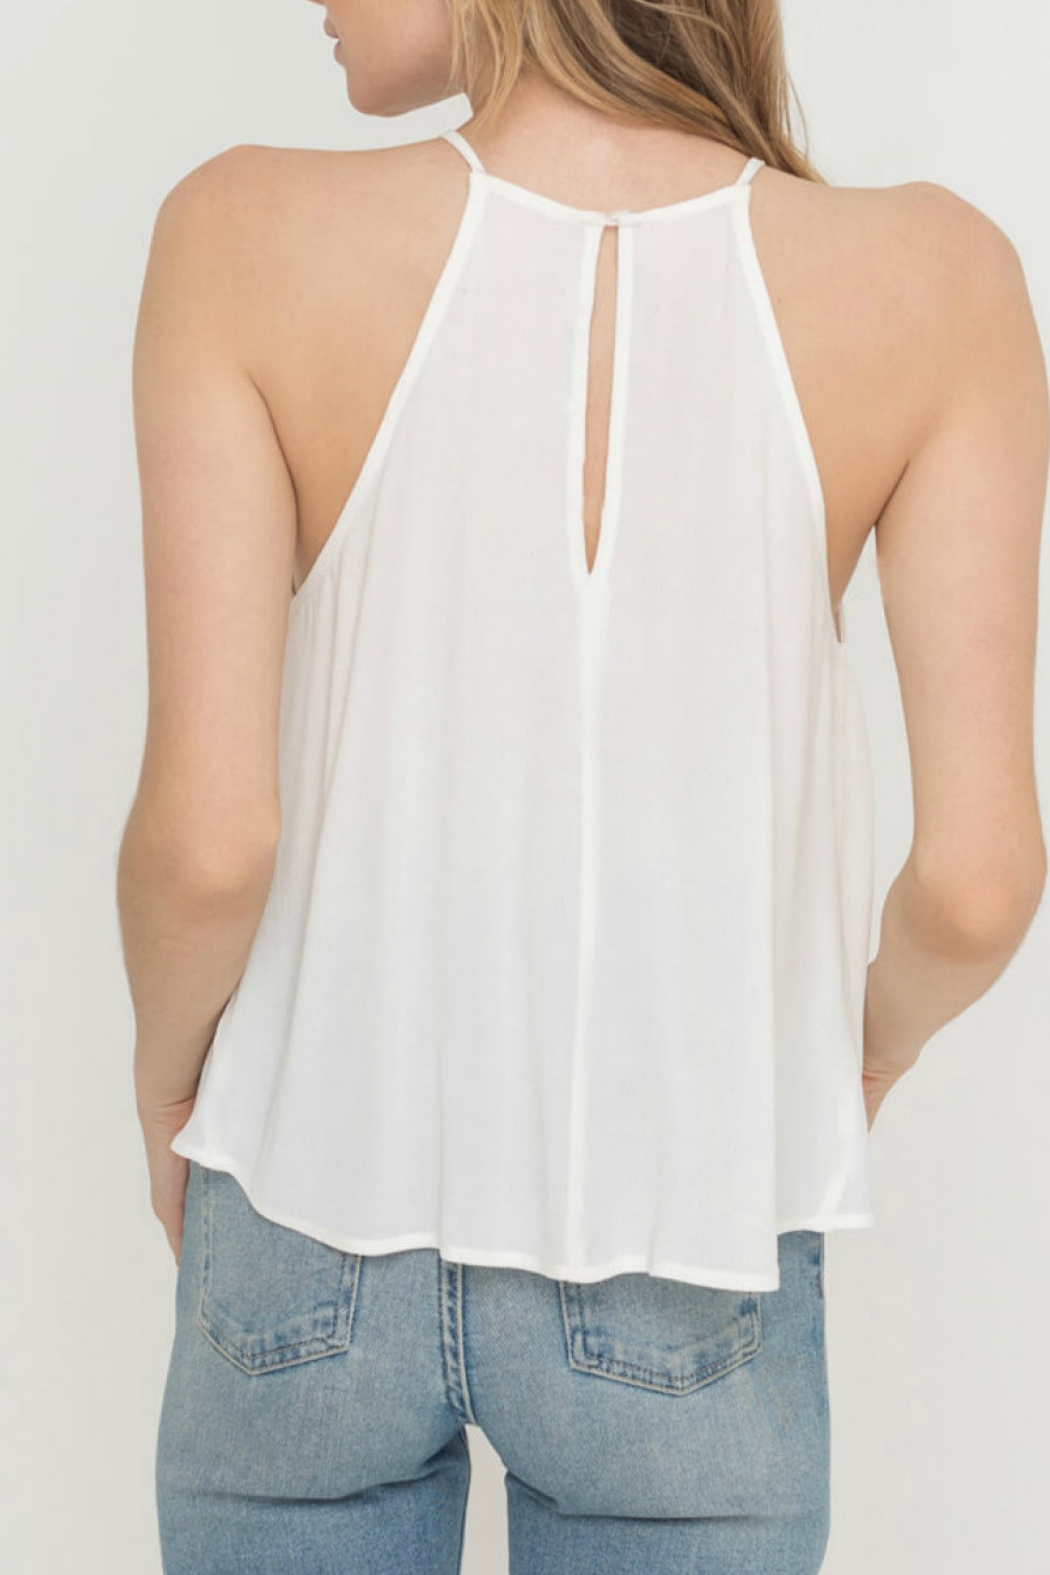 Lush  FRONT KNOT WOVEN TOP - Side Cropped Image